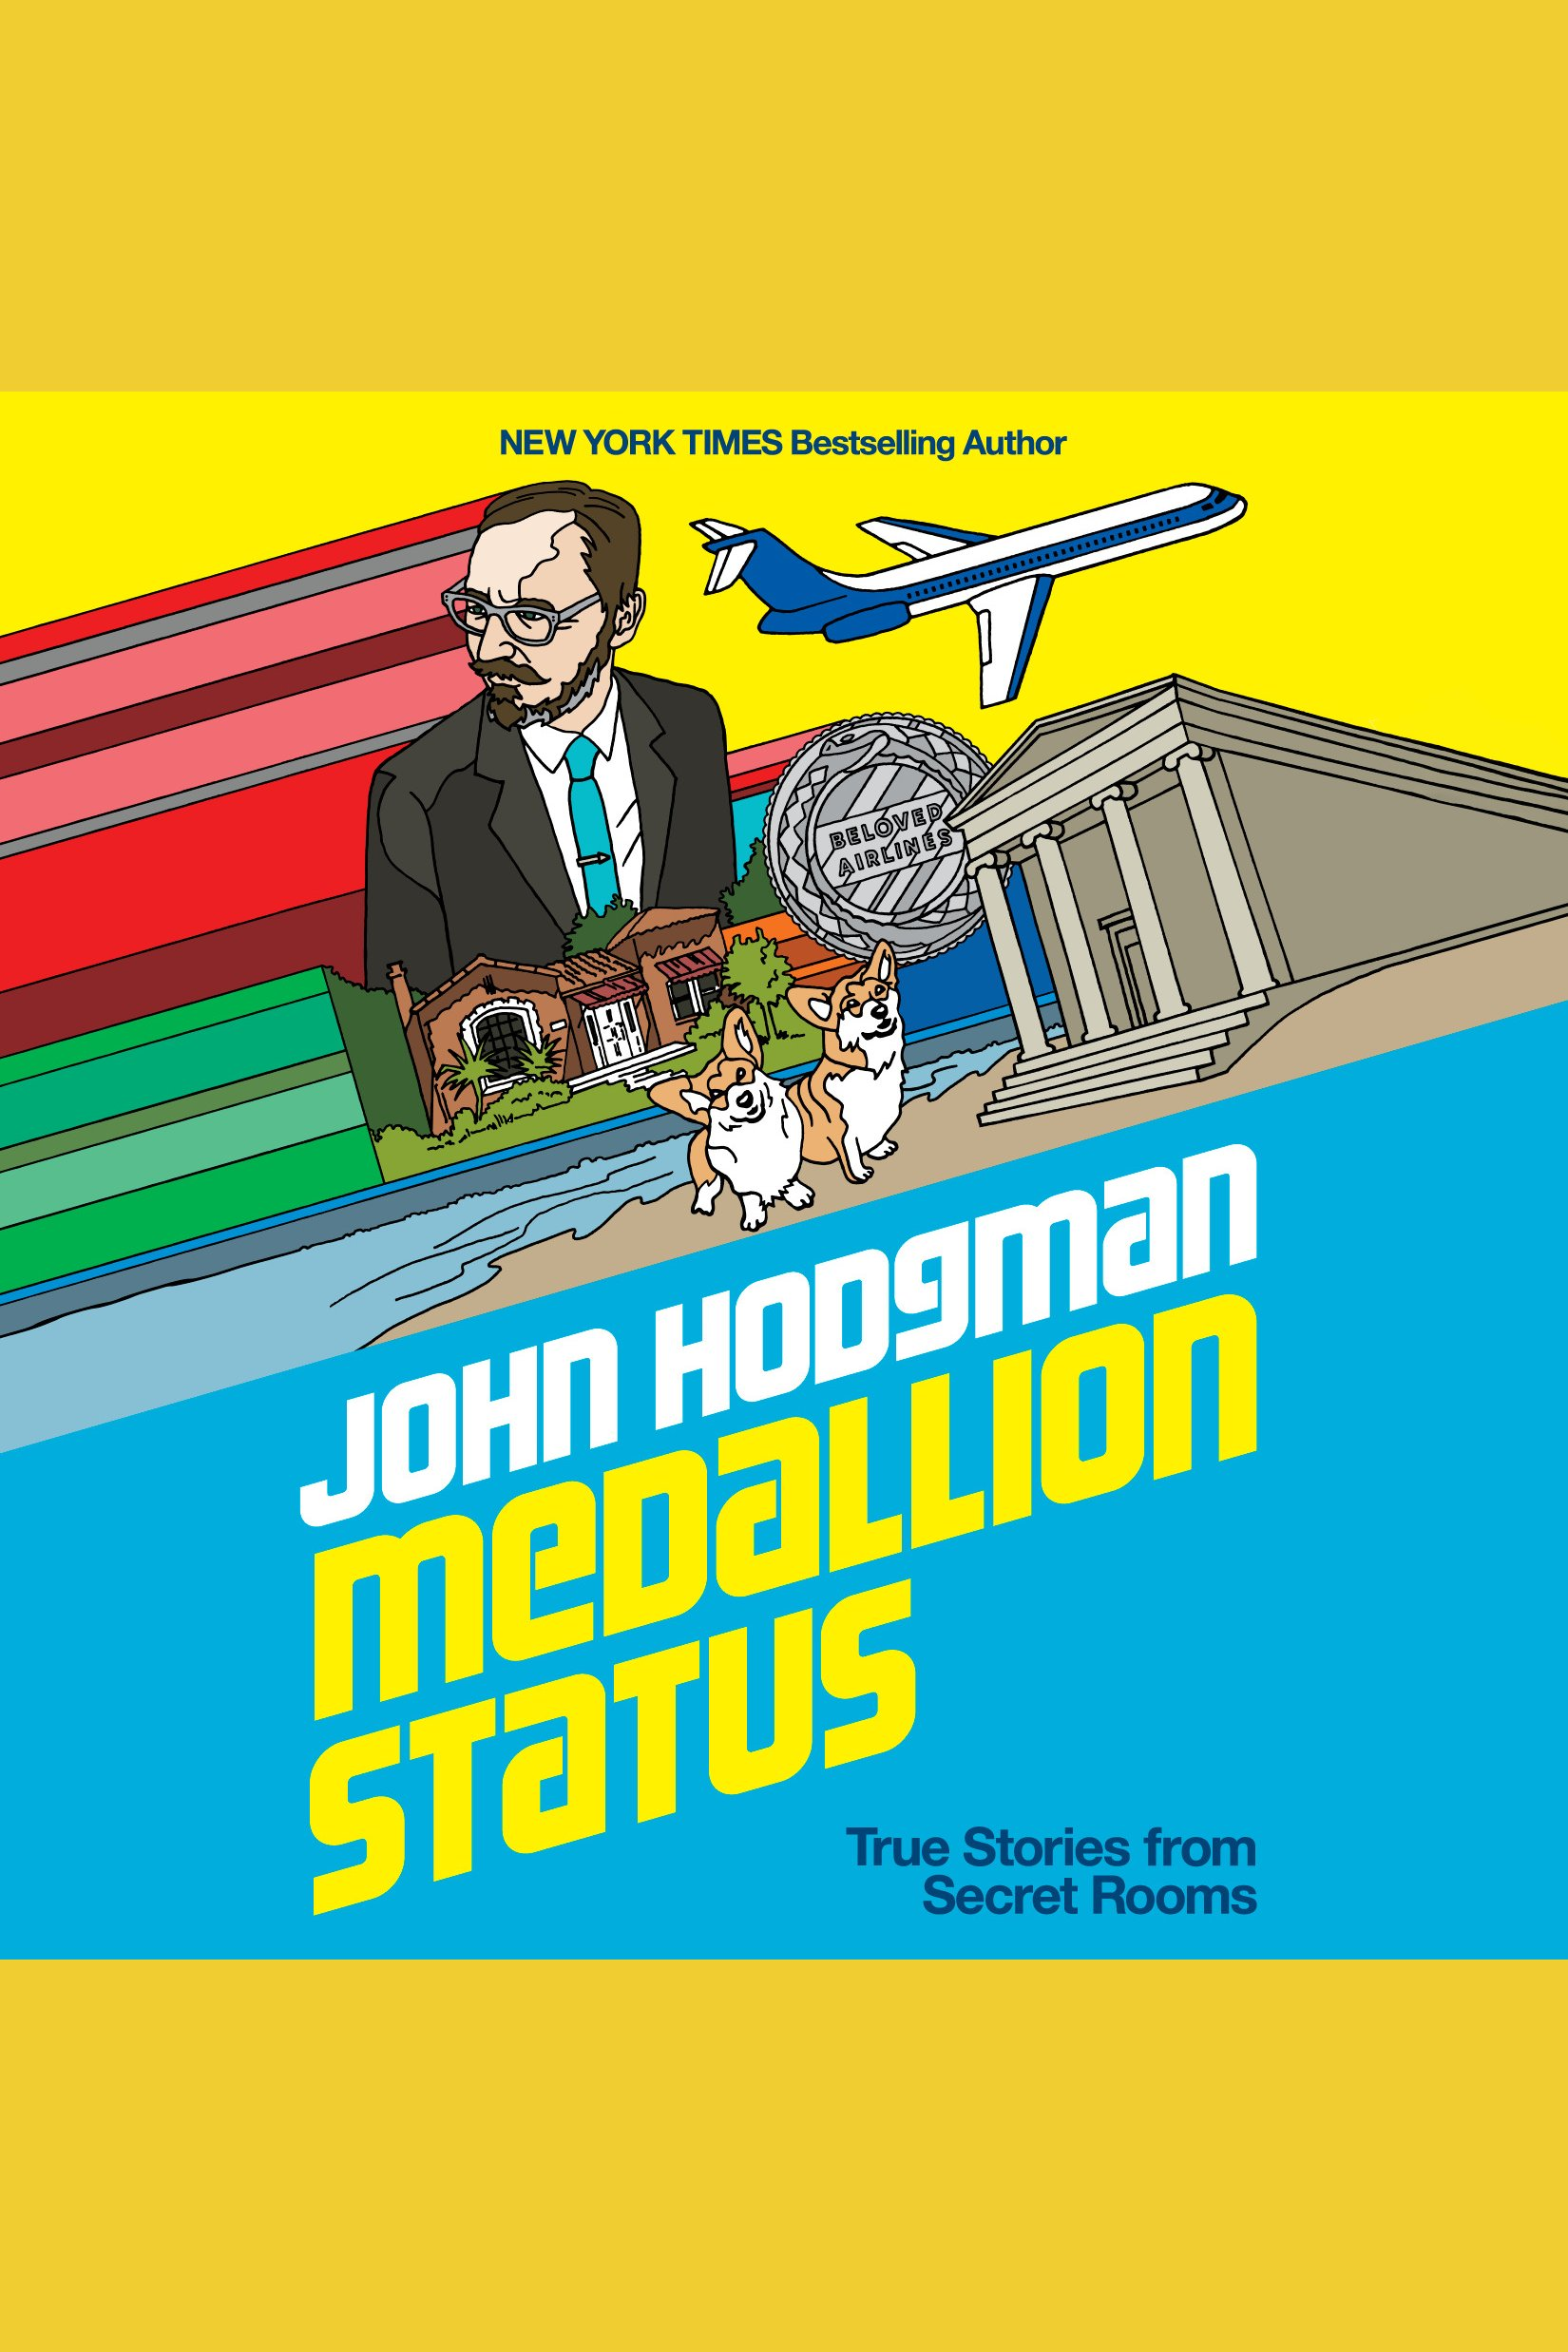 Medallion status true stories from secret rooms cover image